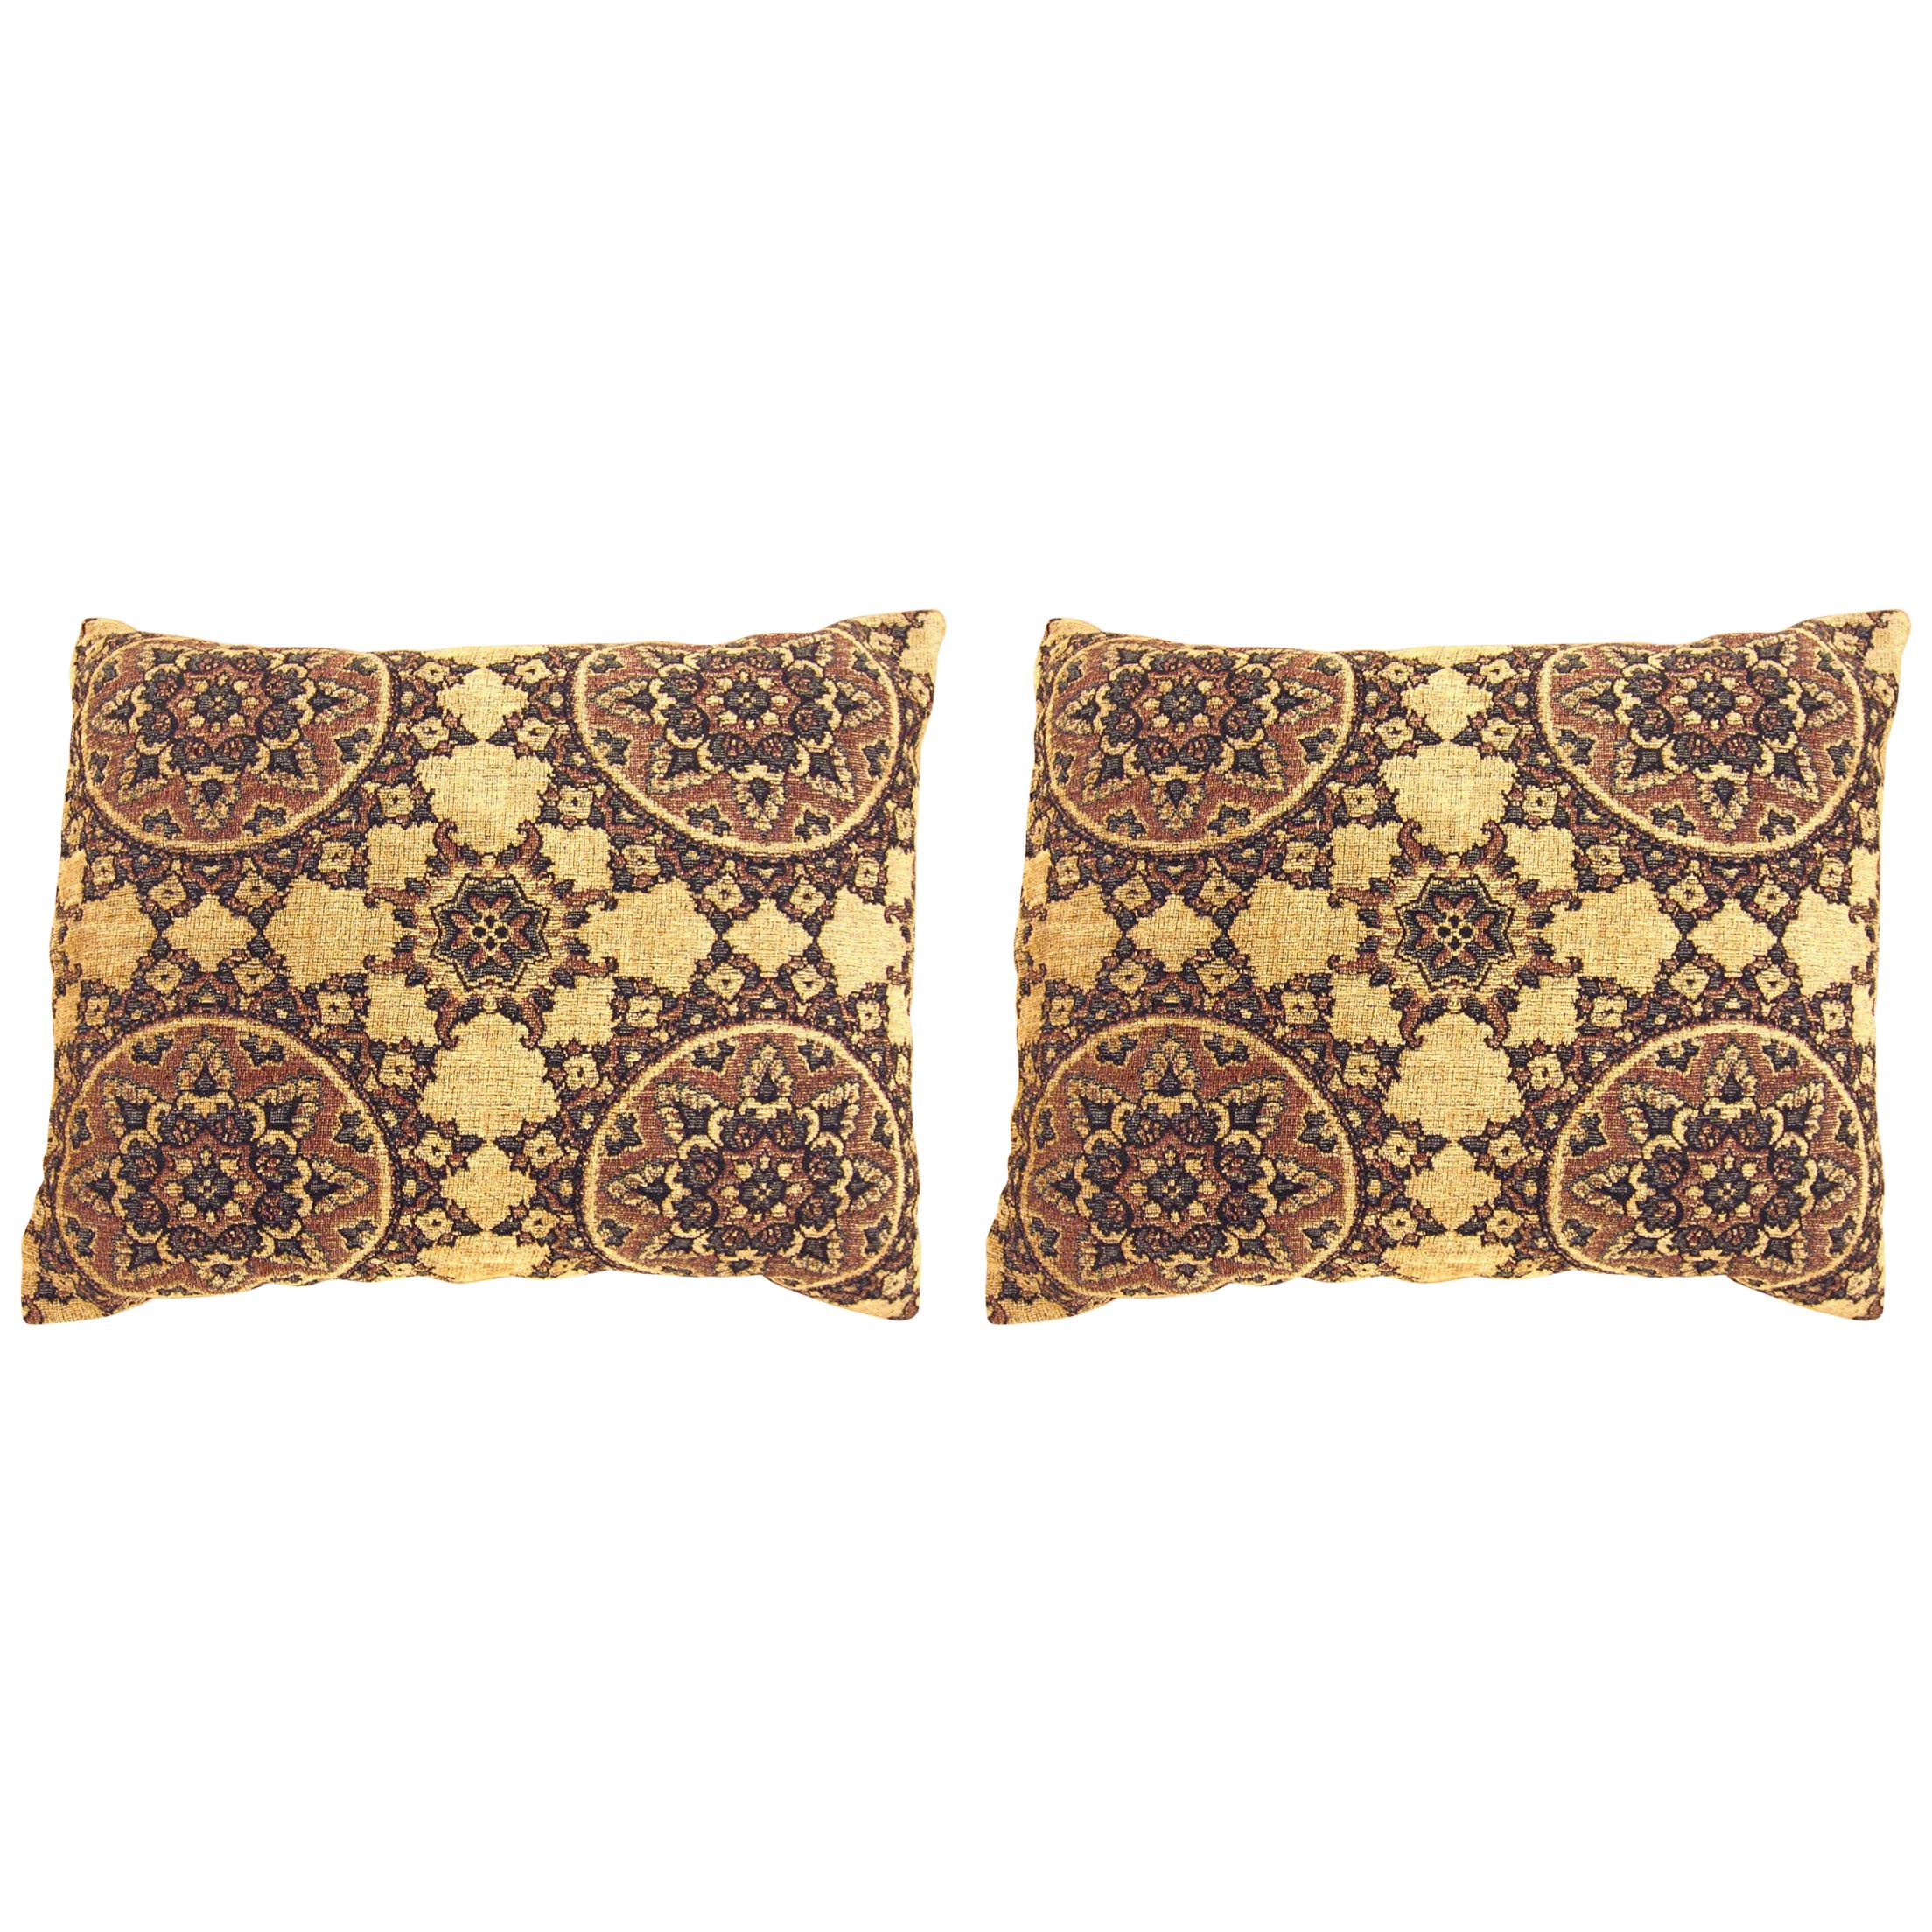 Pair of Two Vintage Tapestry Pillows with Circle Design, with Decorative Brocade